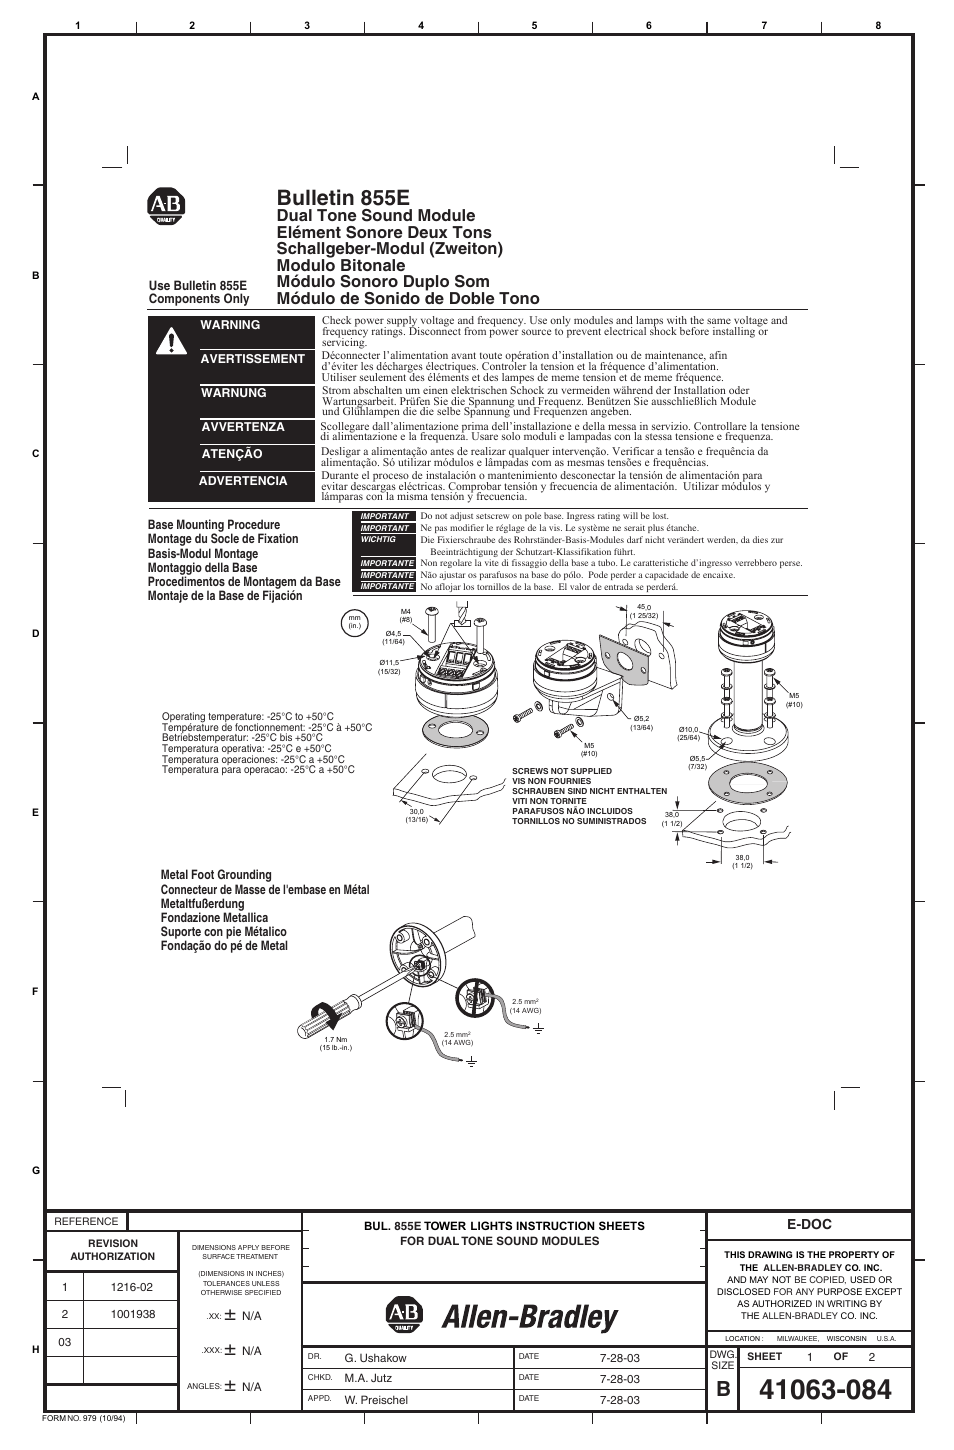 855e stack light wiring diagram